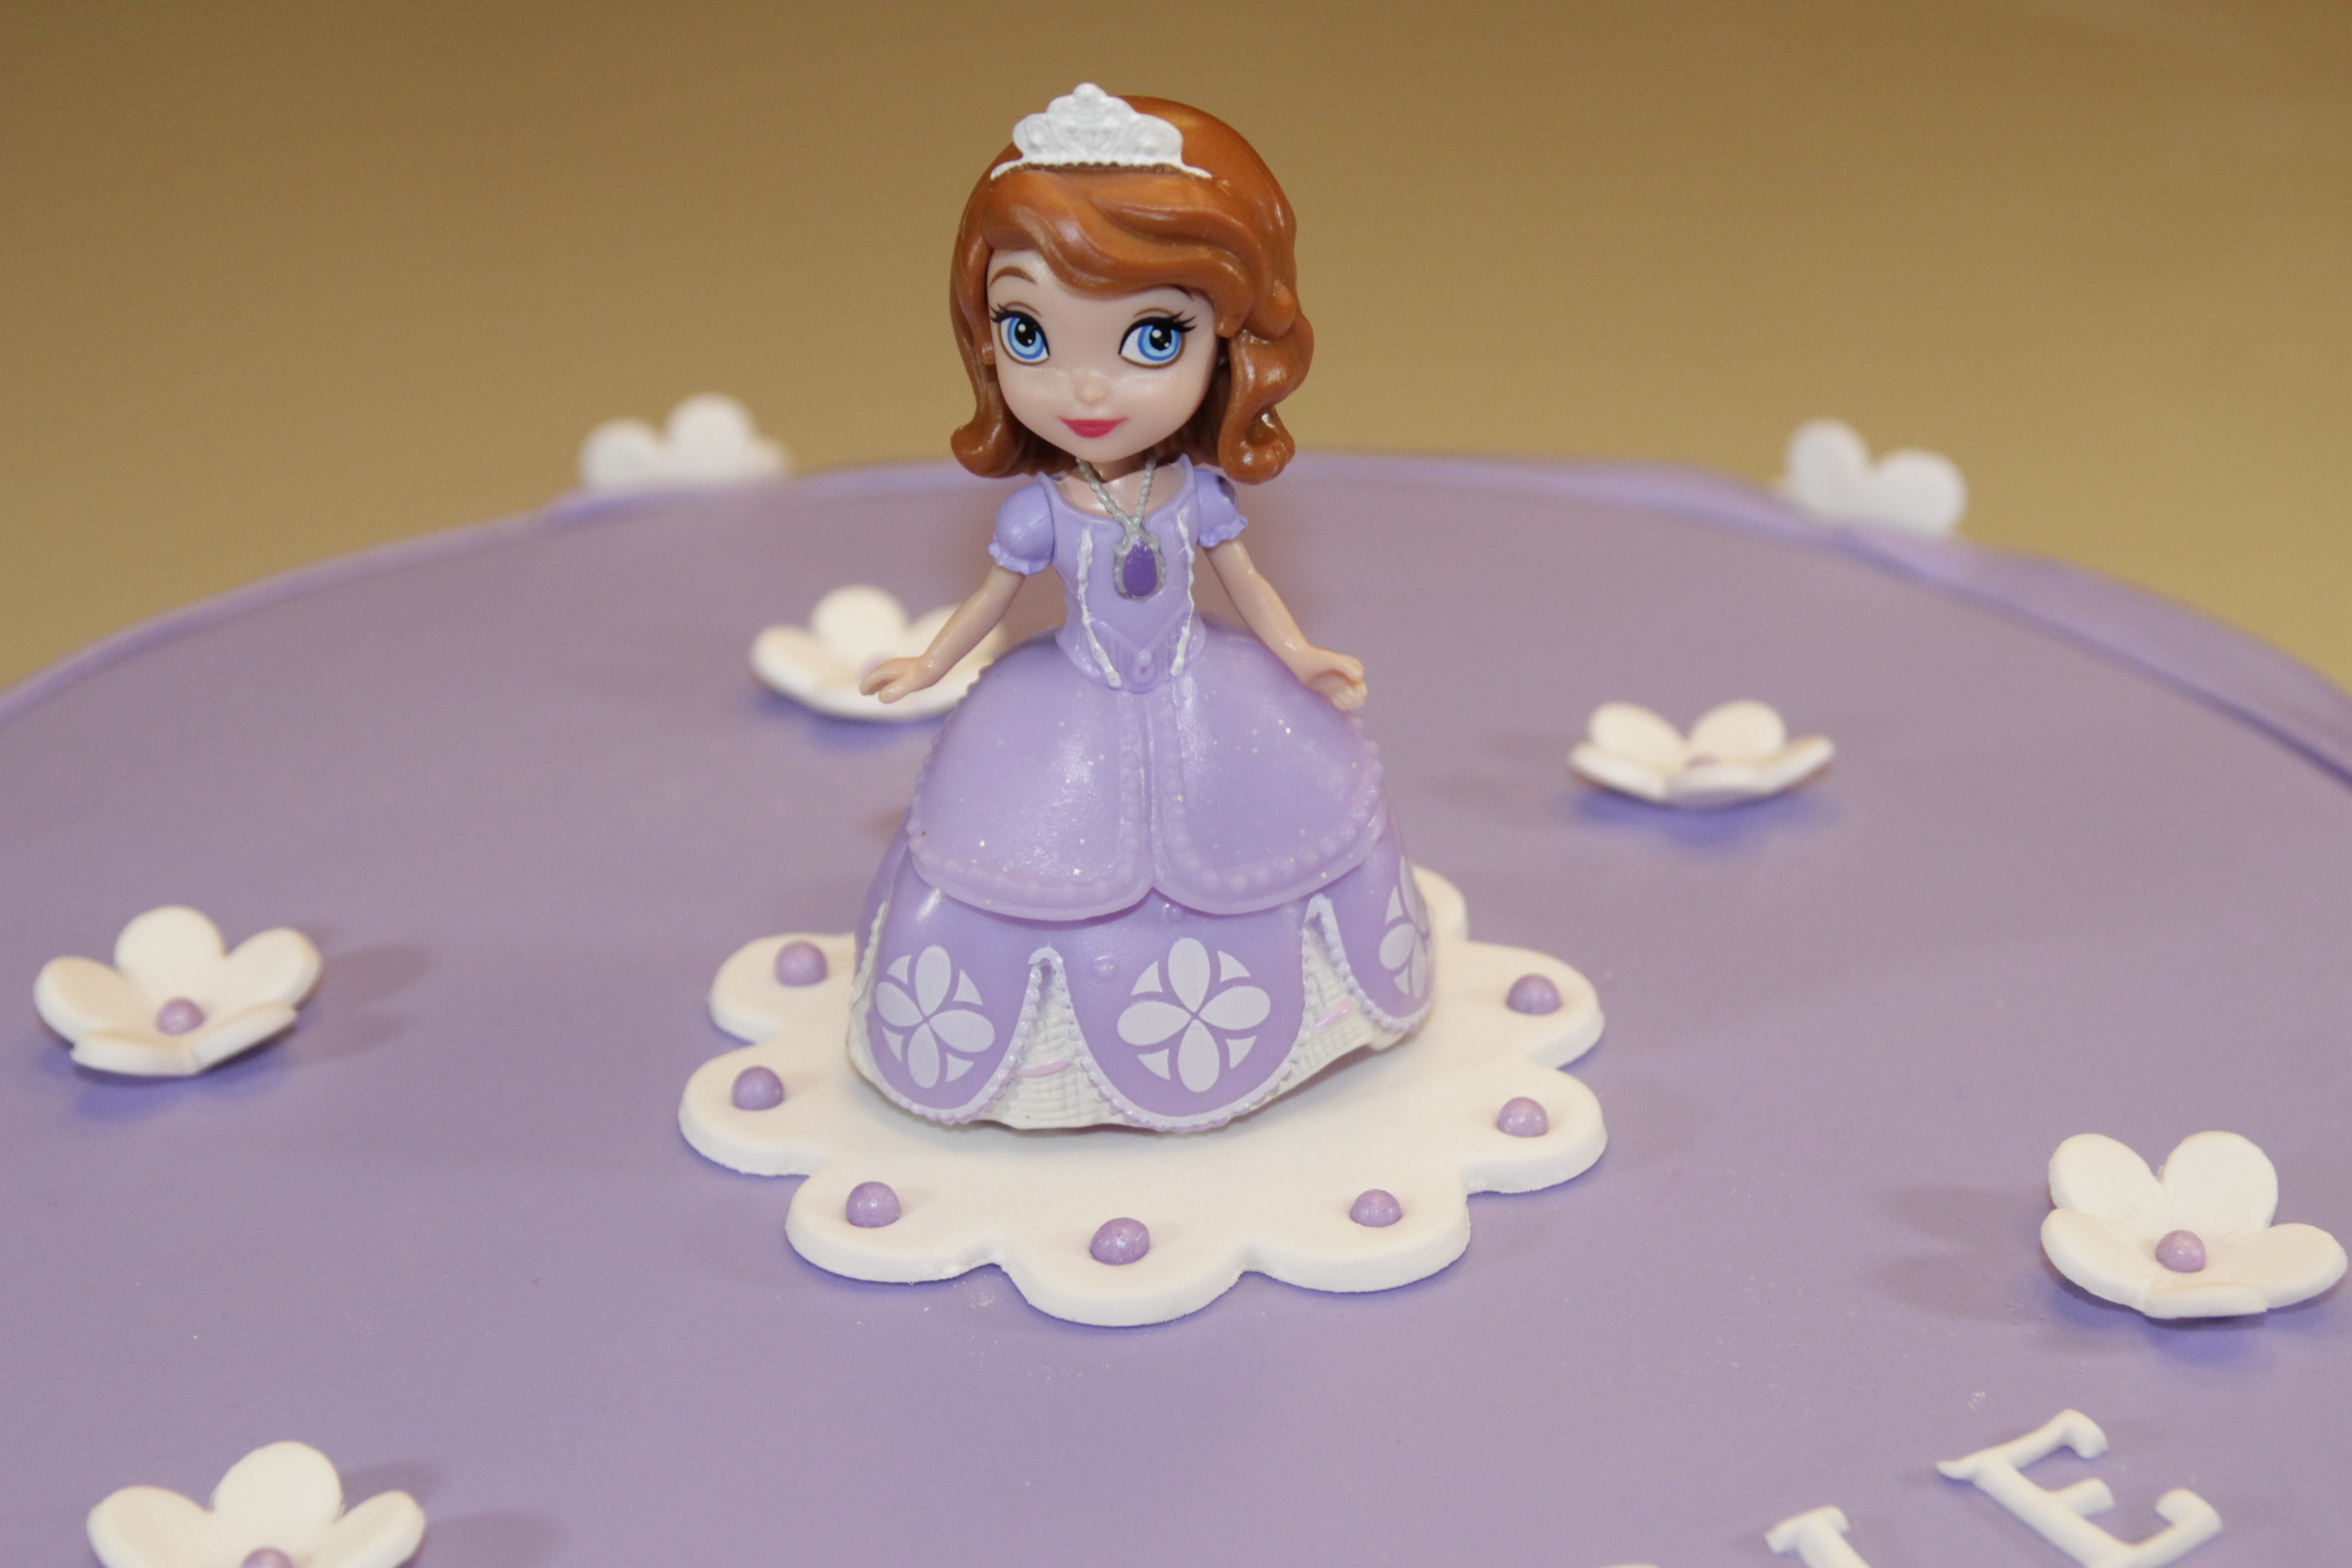 Pictures Of Princess Sofia Cake : Princess Sofia Cake Cake Ideas and Designs